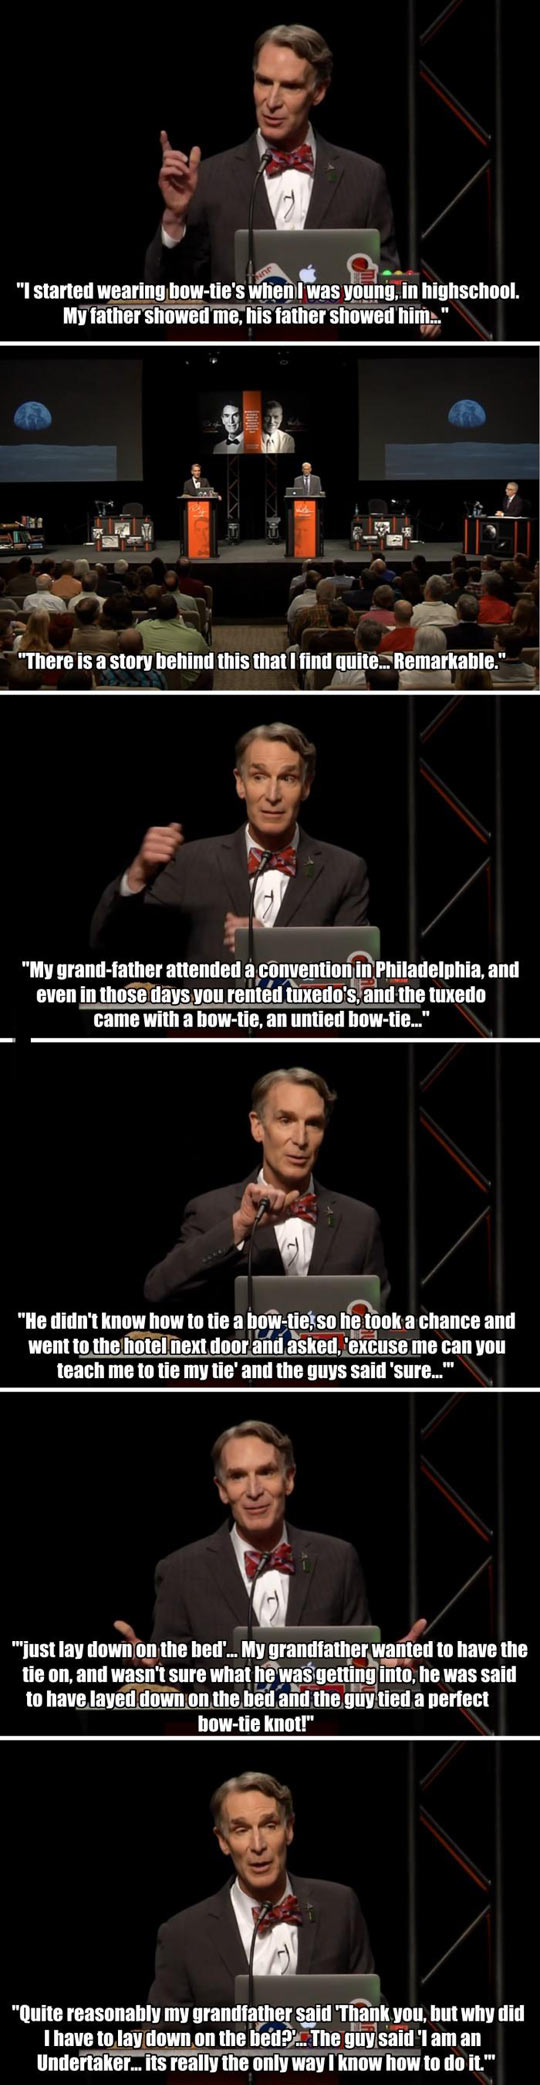 cool-bill-nye-bow-tie-story